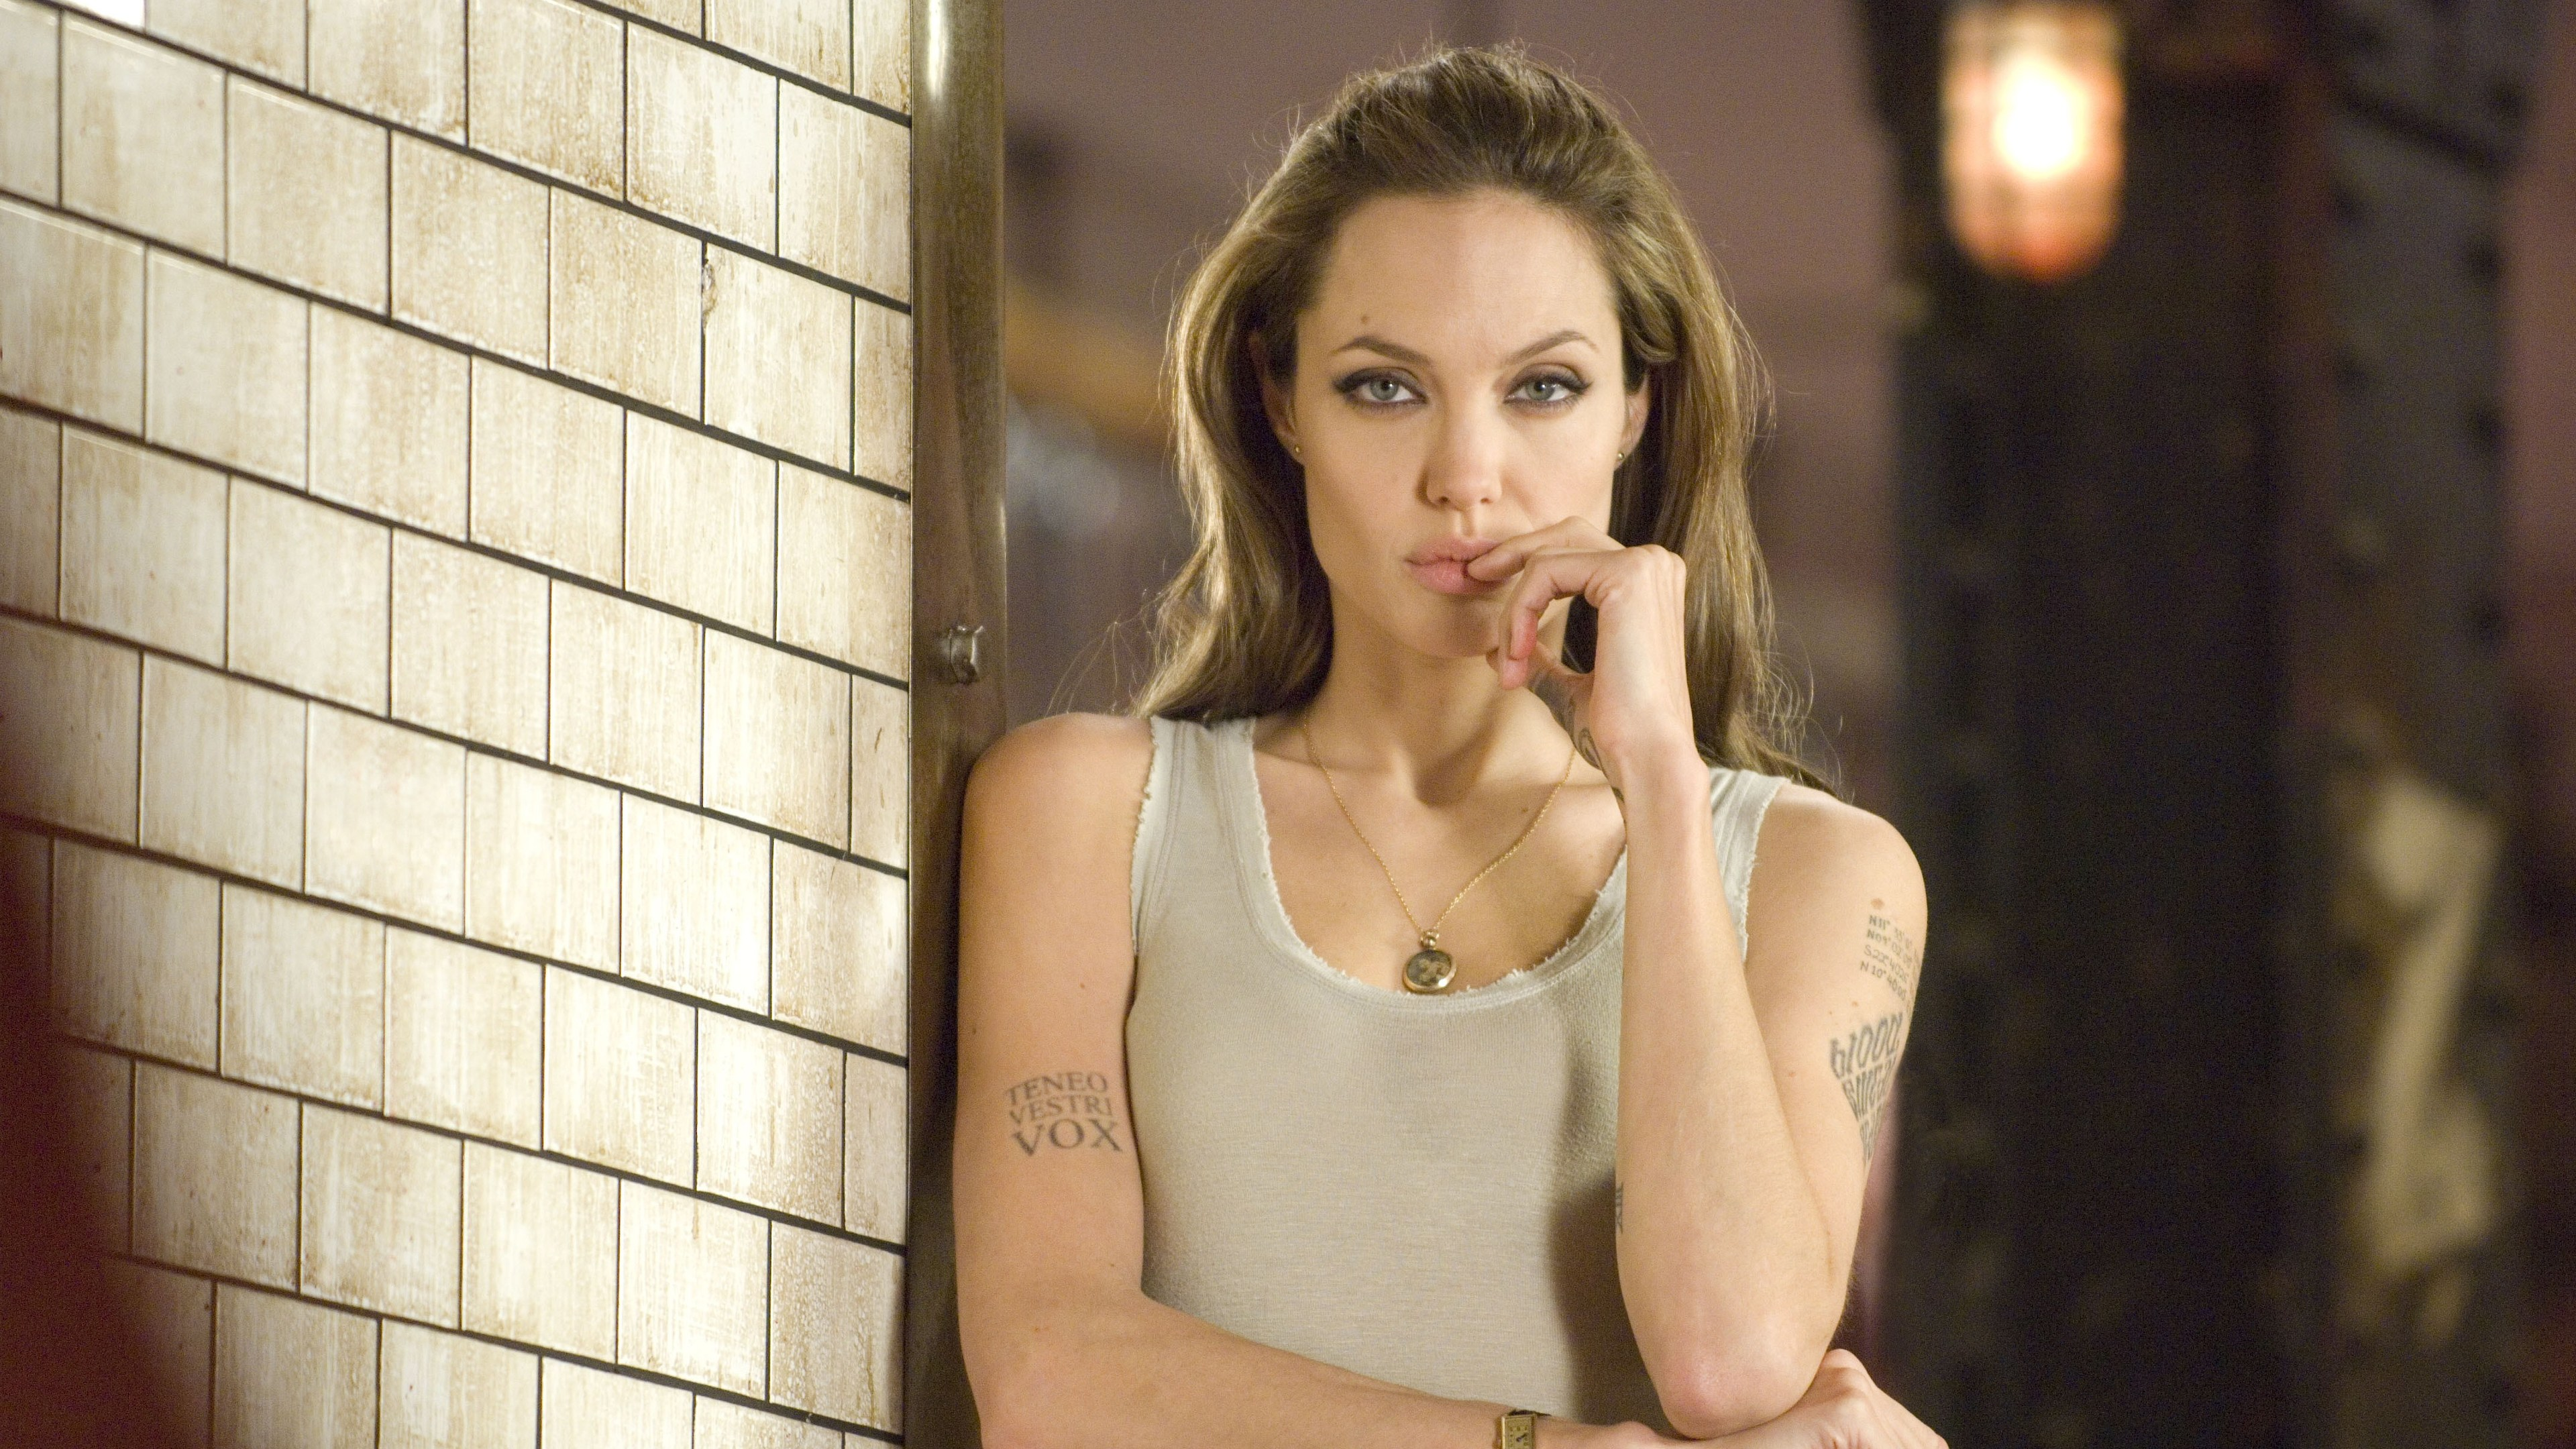 angelina jolie in wanted 4k 1539535525 - Angelina Jolie In Wanted 4k - hd-wallpapers, girls wallpapers, celebrities wallpapers, angelina jolie wallpapers, 4k-wallpapers